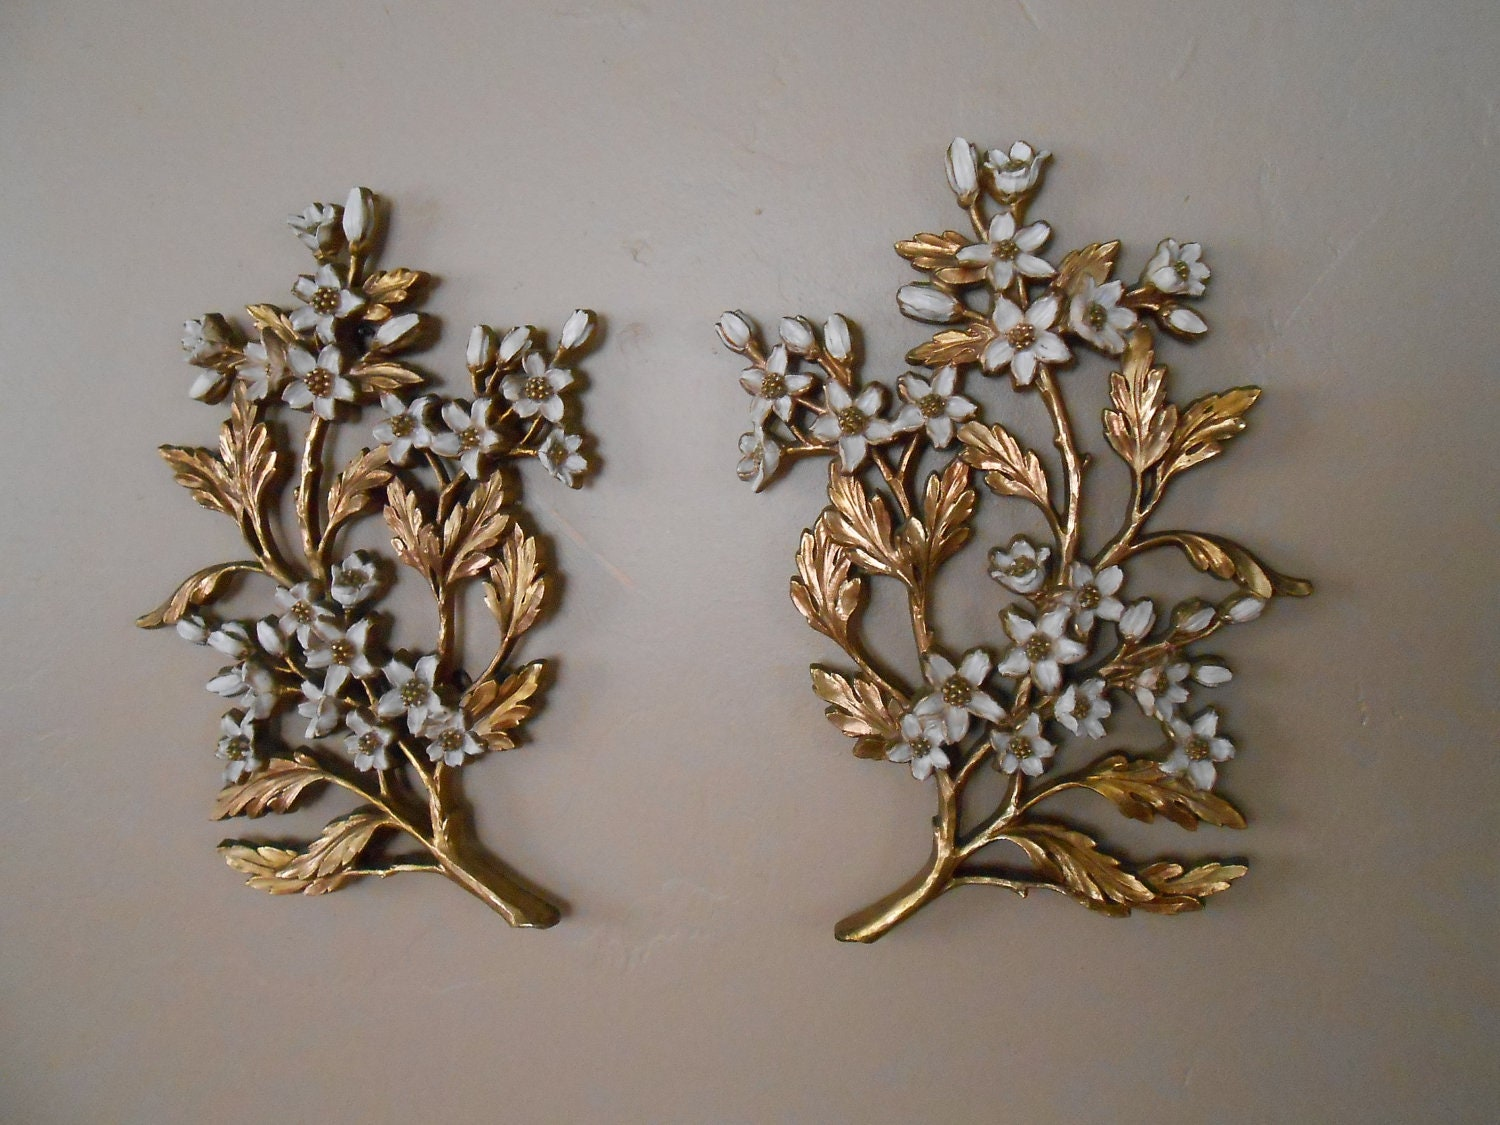 Etsy Gold Wall Decor : Syroco gold and white floral wall decor by vintagepeople